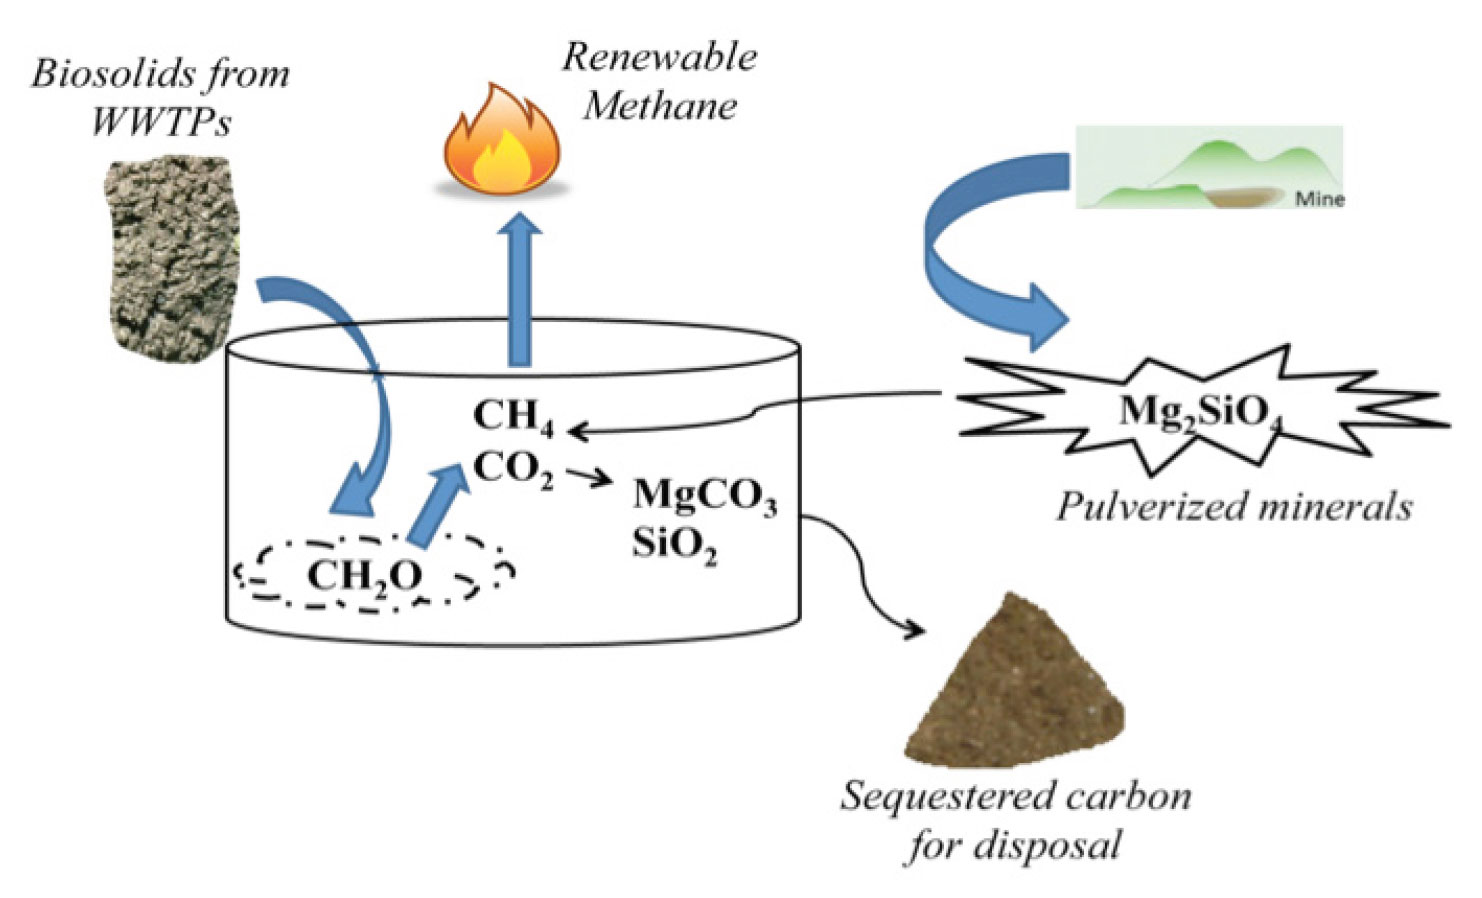 Enhanced Renewable Methane Production System Benefits Wastewater Treatment  Plants, Farms, and Landfills (ANL-IN-05-079) | Argonne National Laboratory